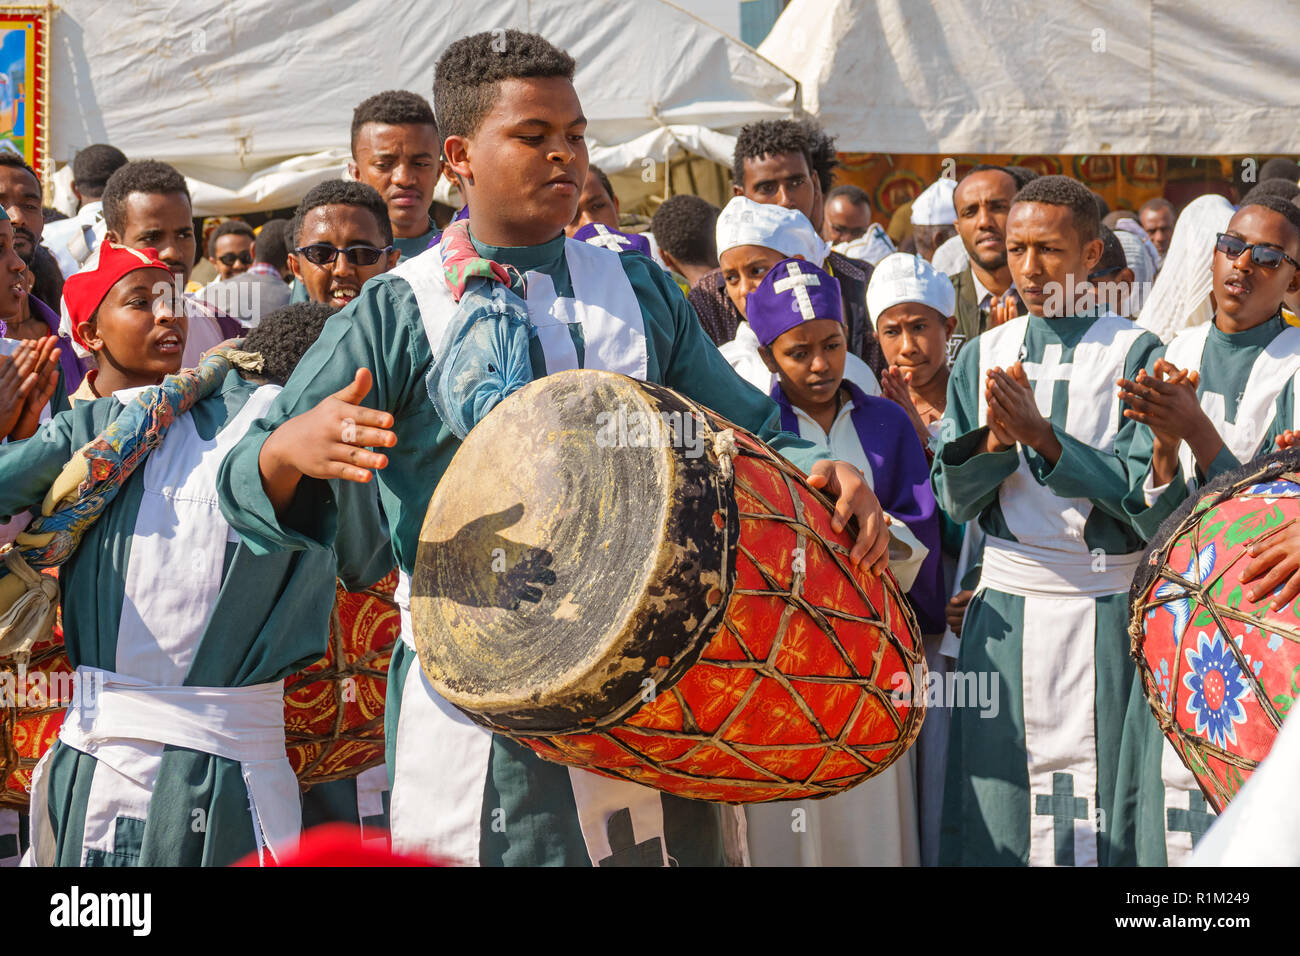 Drummer during Timkat Festival in Addis Ababa Ethiopia - Stock Image